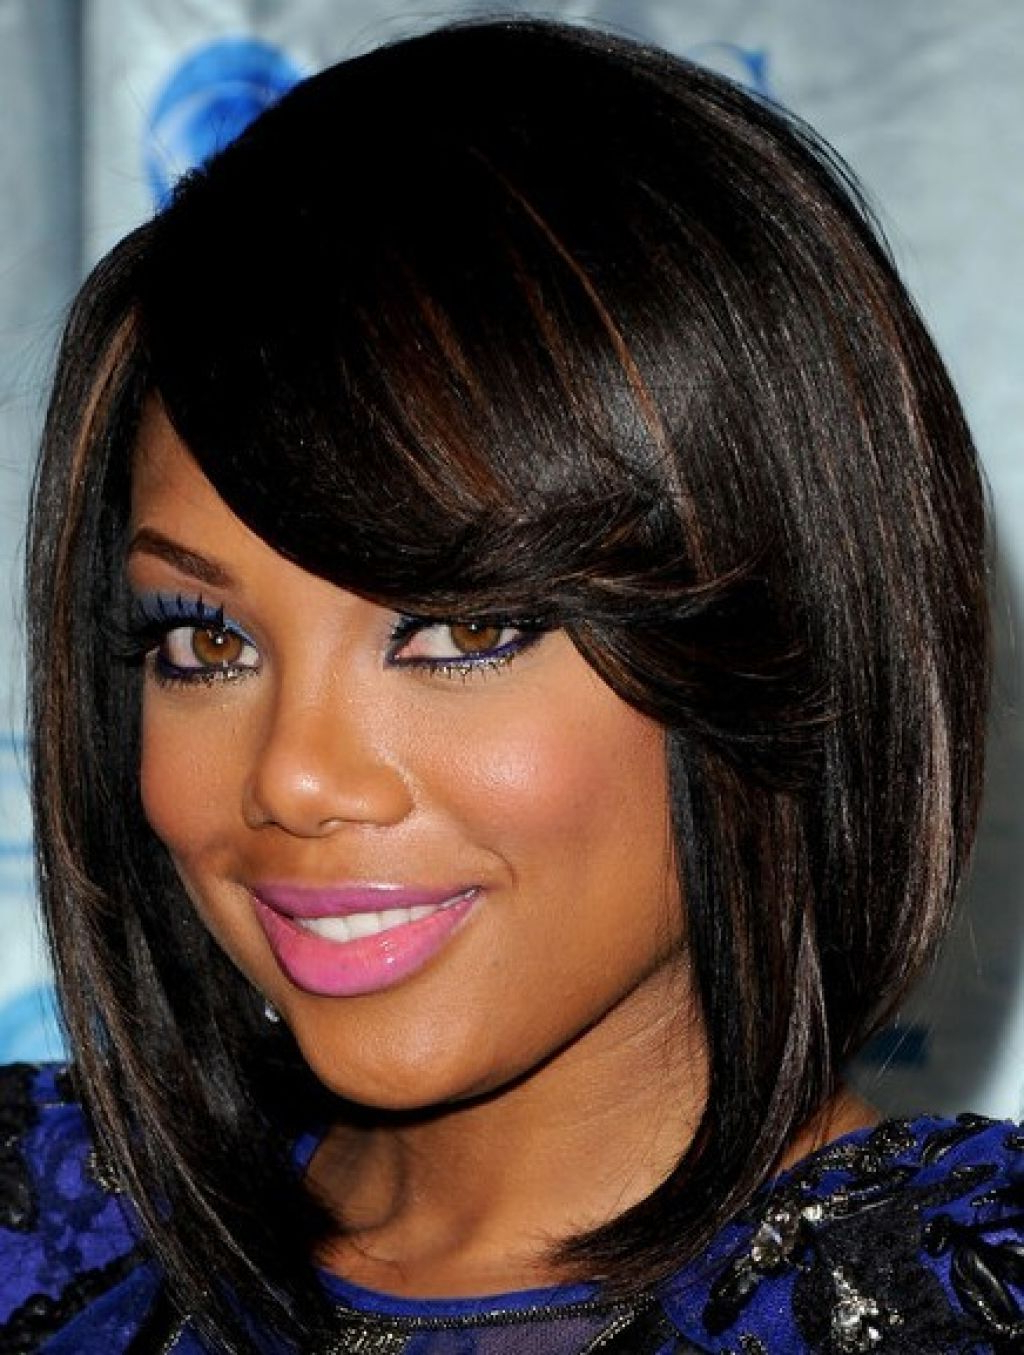 Current Very Medium Haircuts For Black Women Inside 27 Short Hairstyles And Haircuts For Black Women Of Class (View 2 of 20)